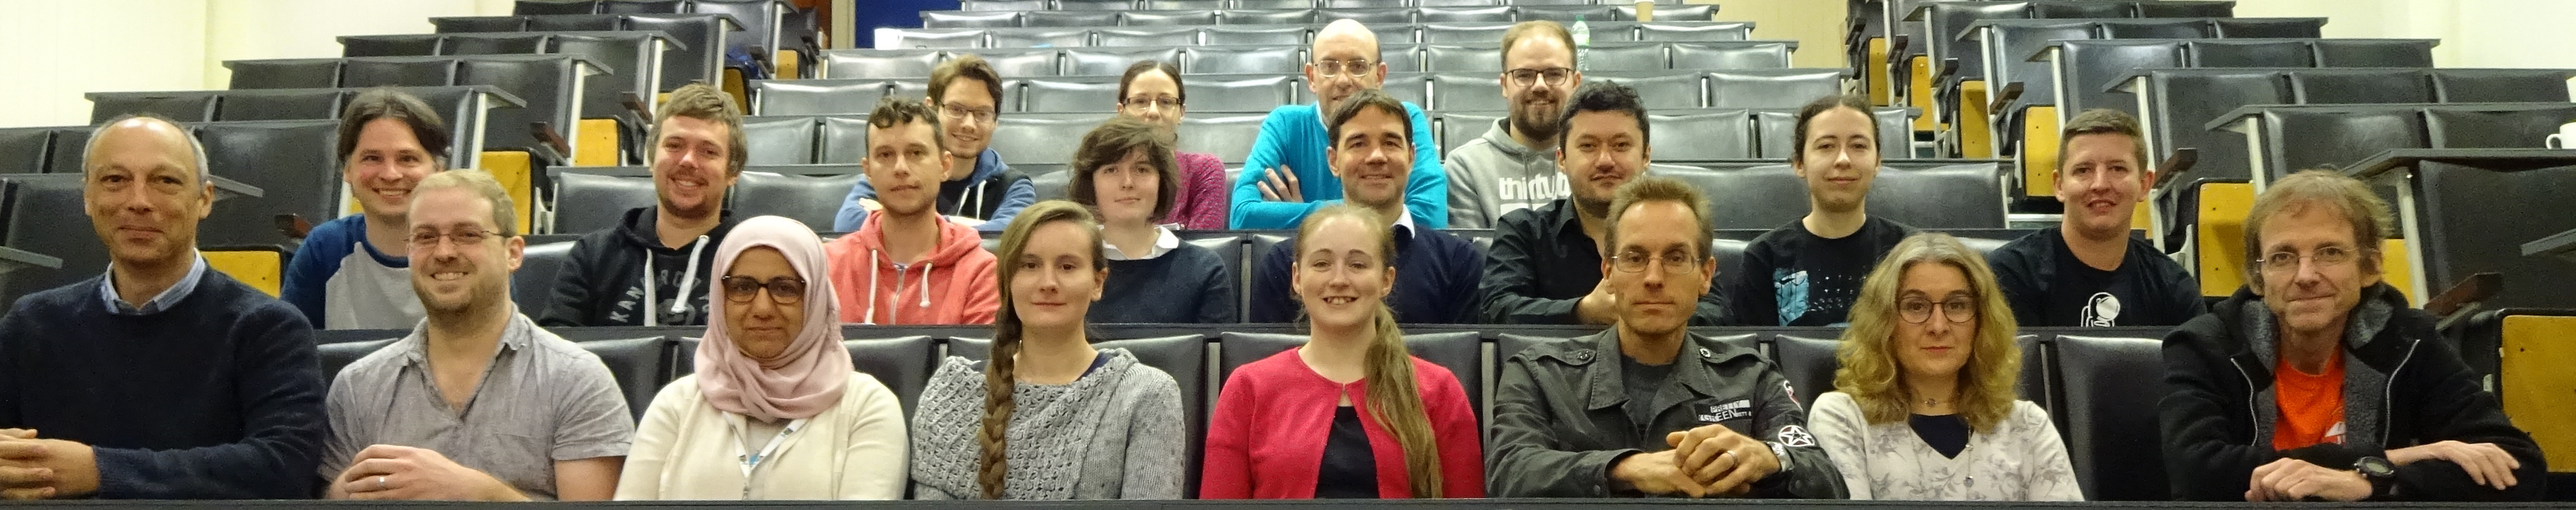 Keele Astrophysics Group Photograph